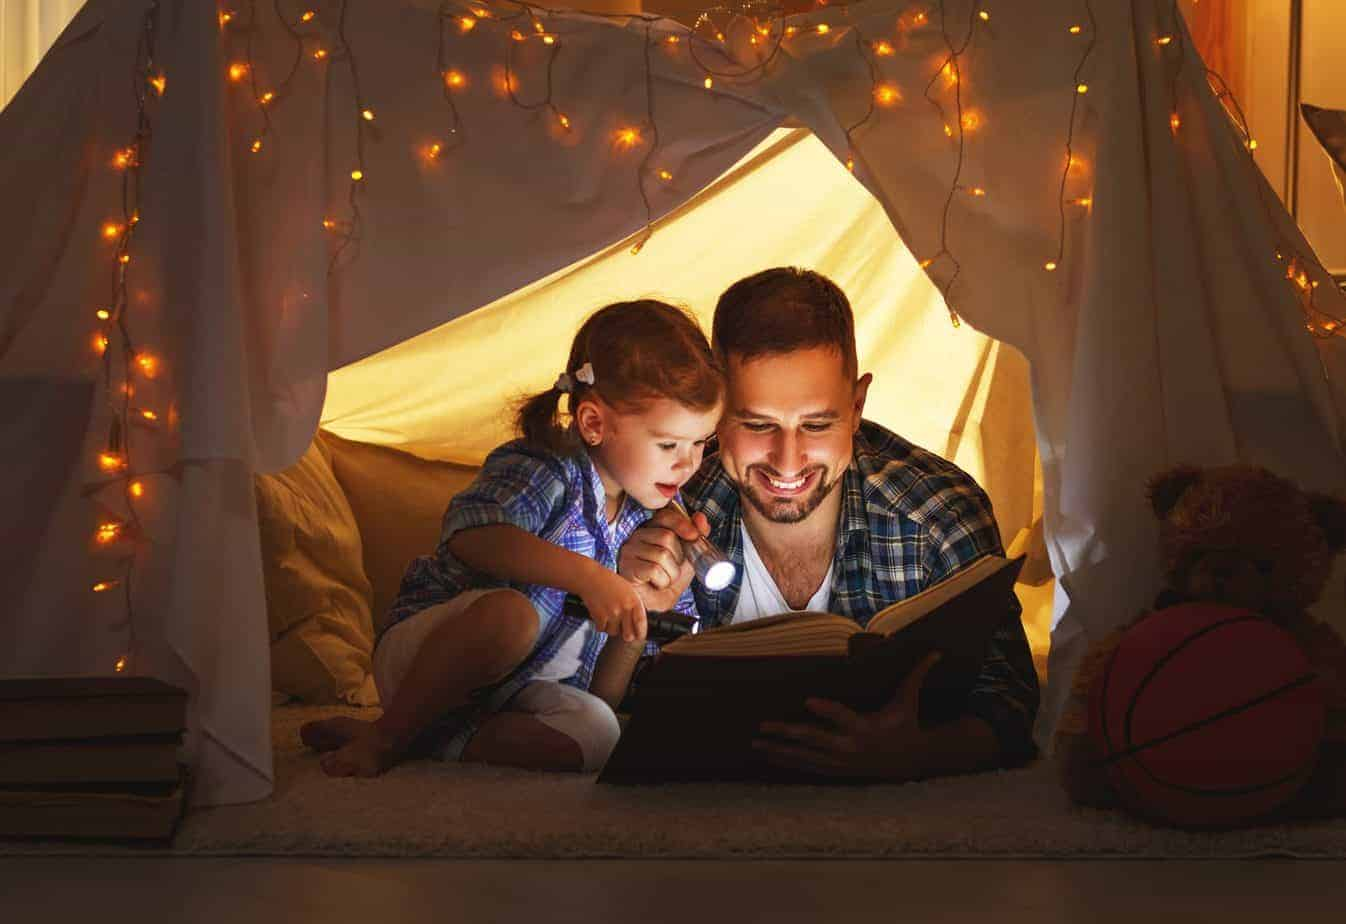 Foster reading habits in your baby